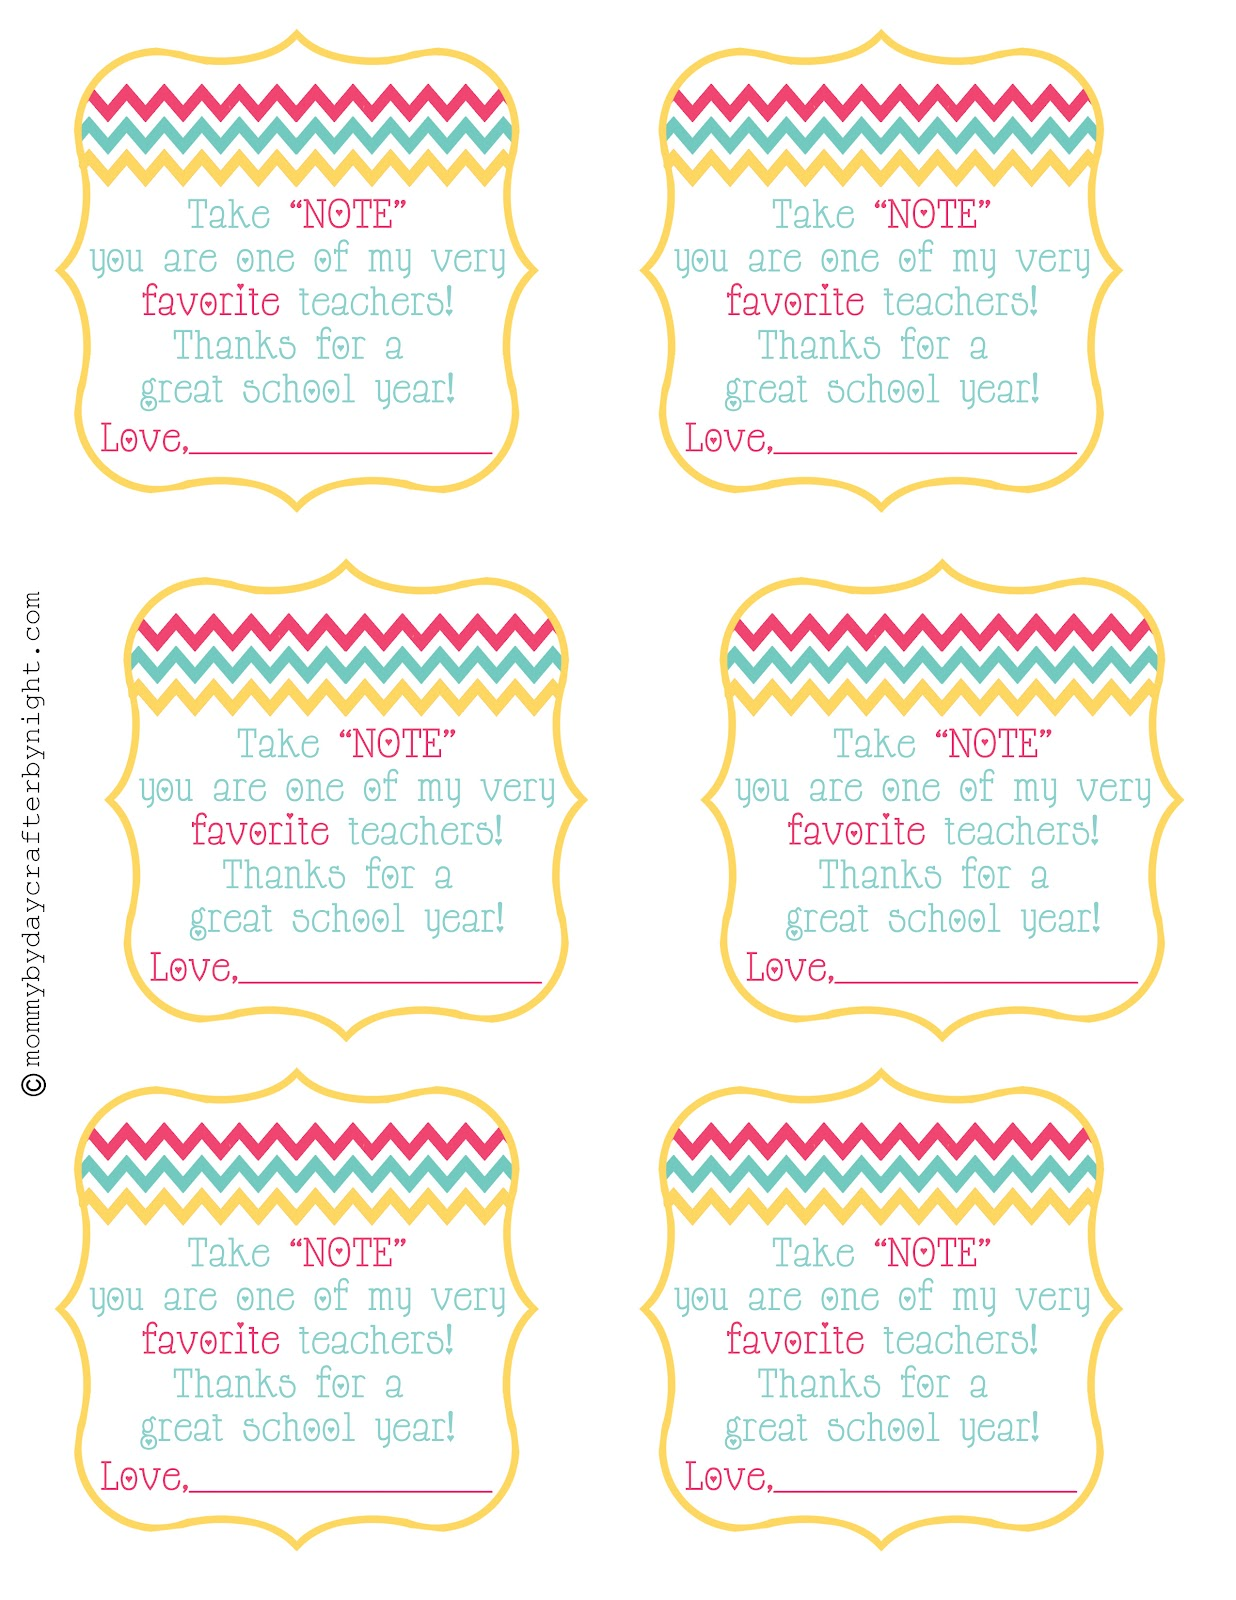 worksheet Free Printables For Teachers teacher gift idea free printable appreciation skip appreciation